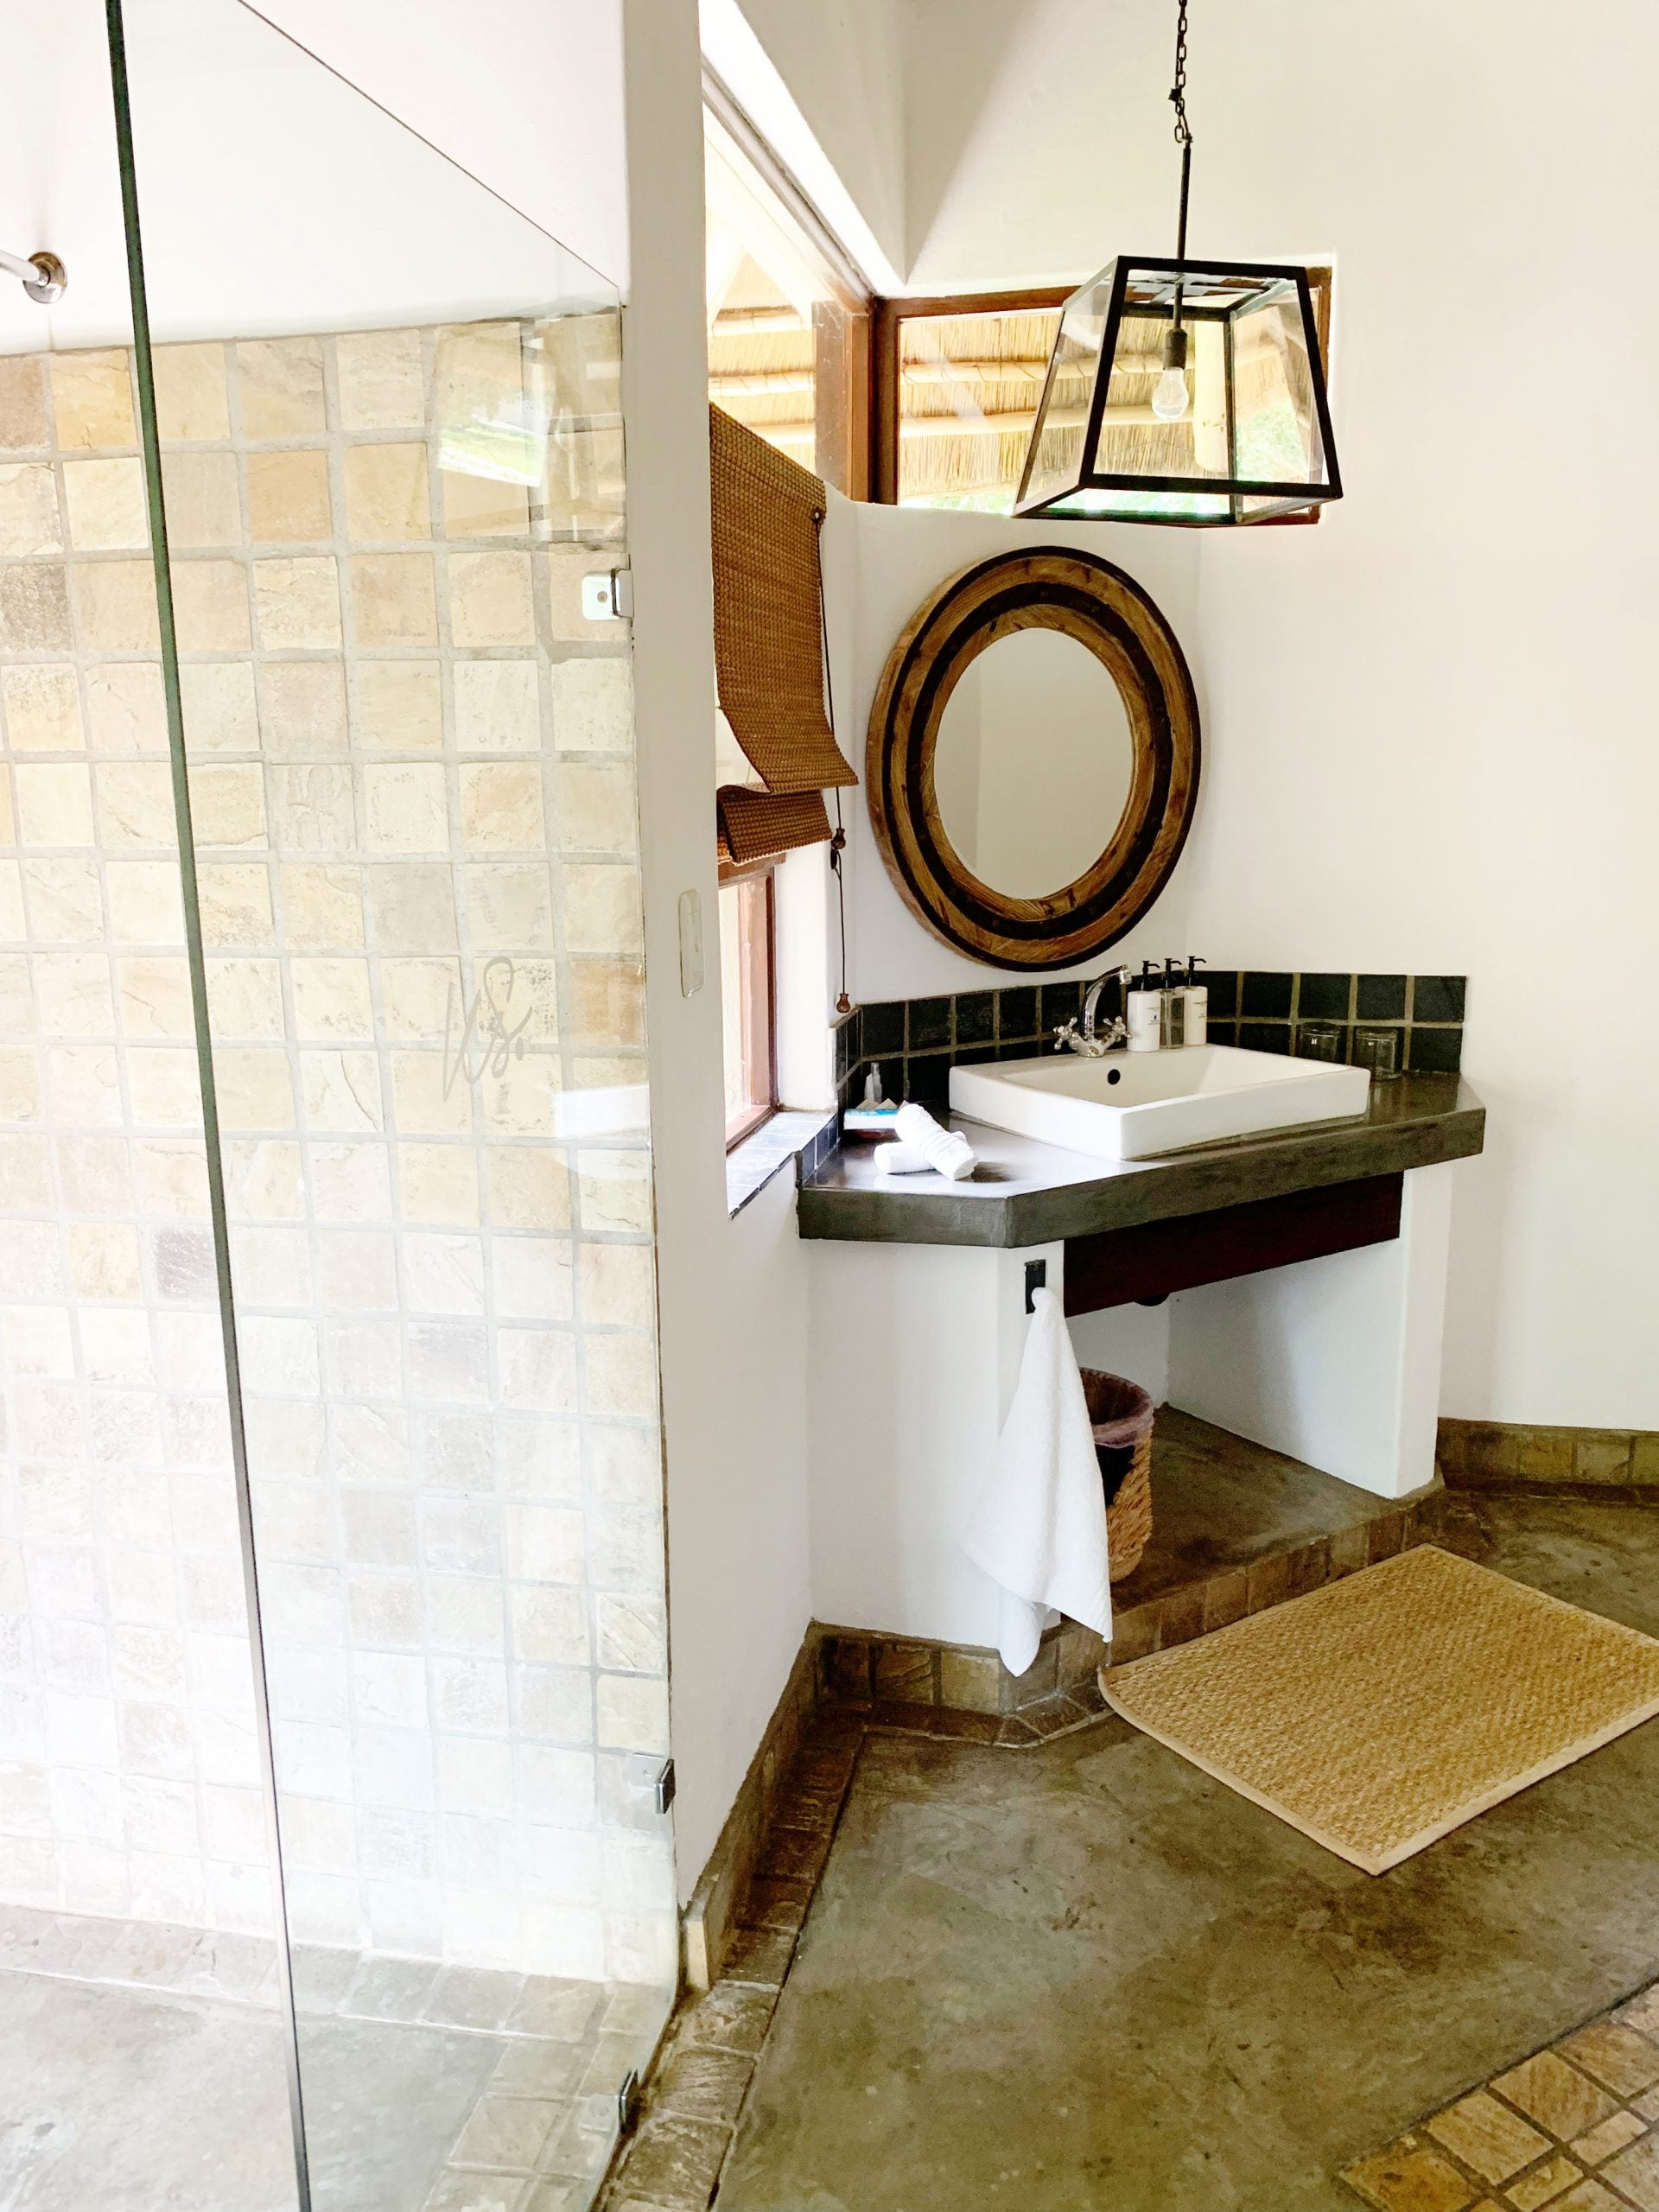 Safari lodge bathroom